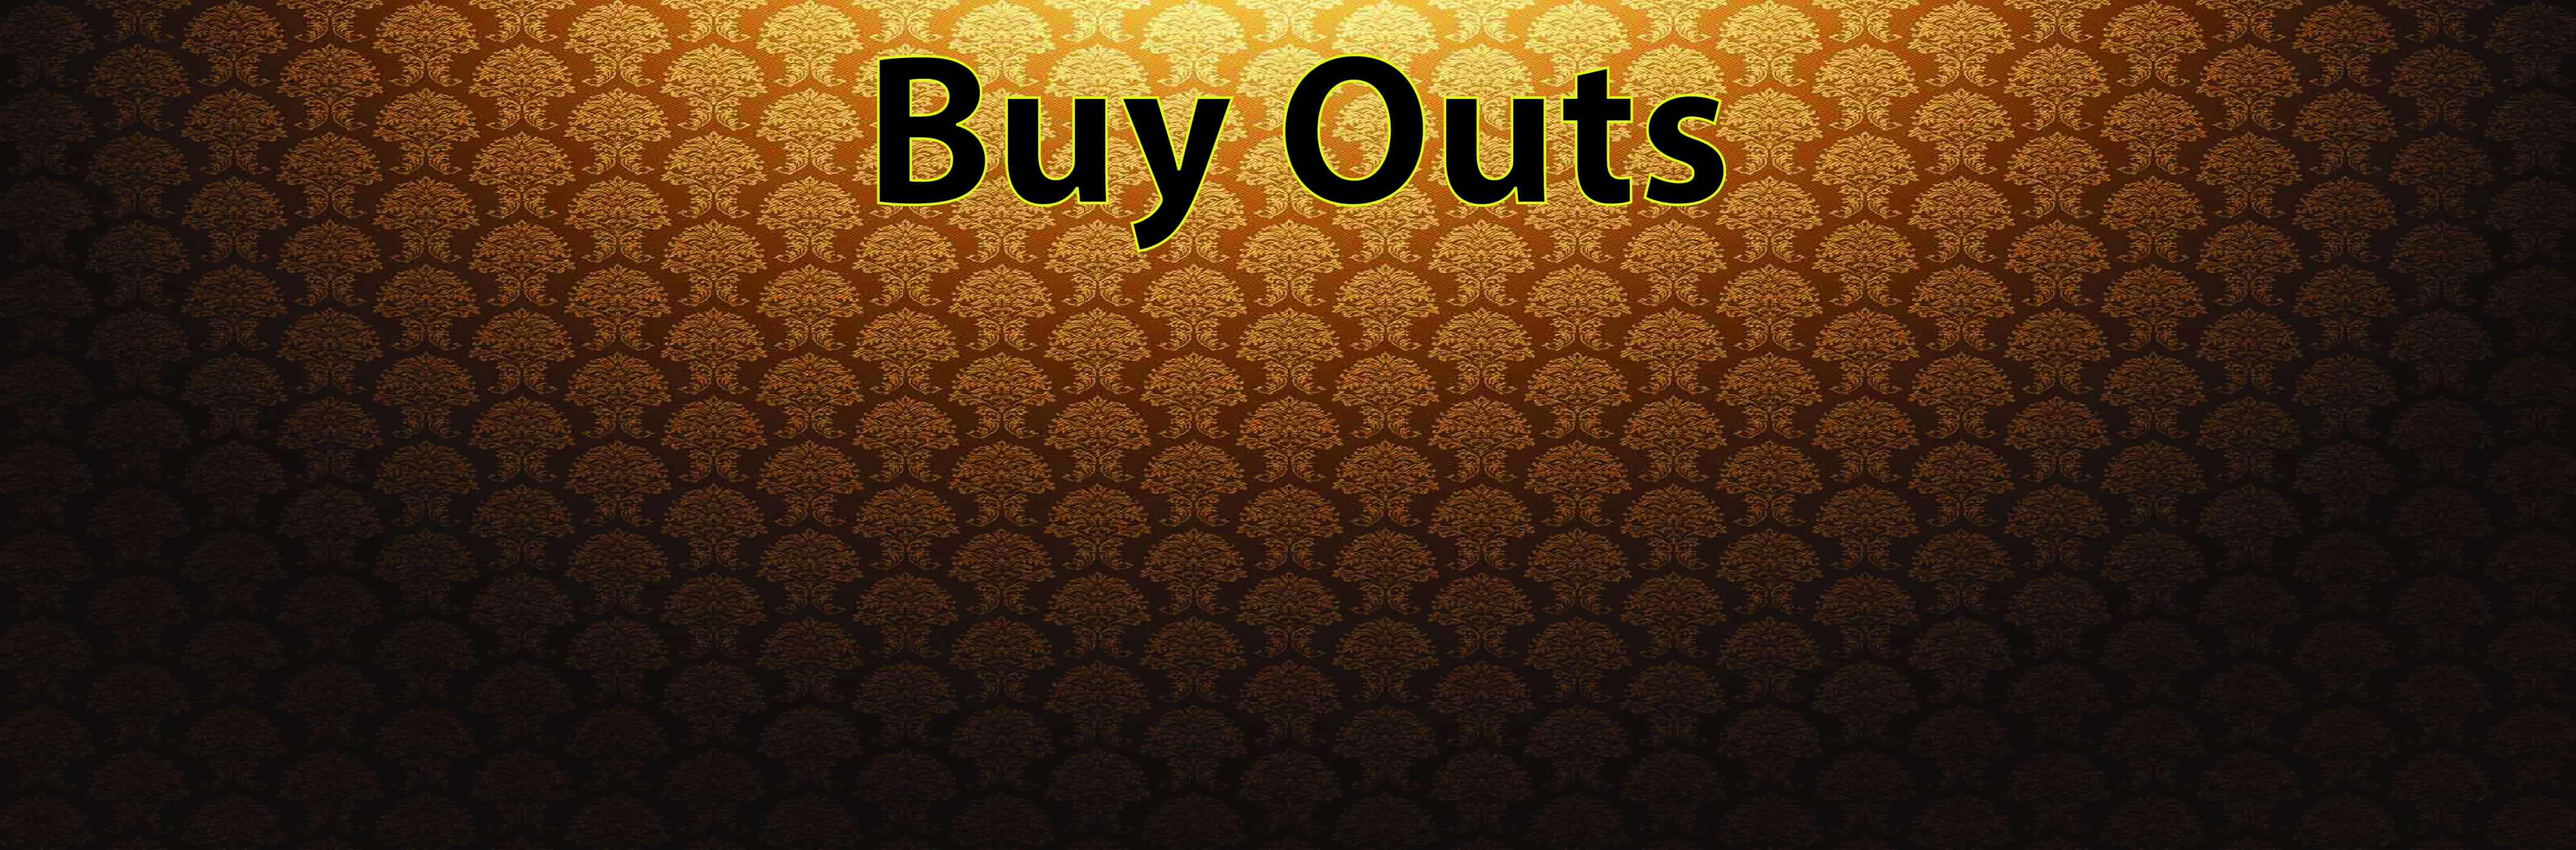 Buy out